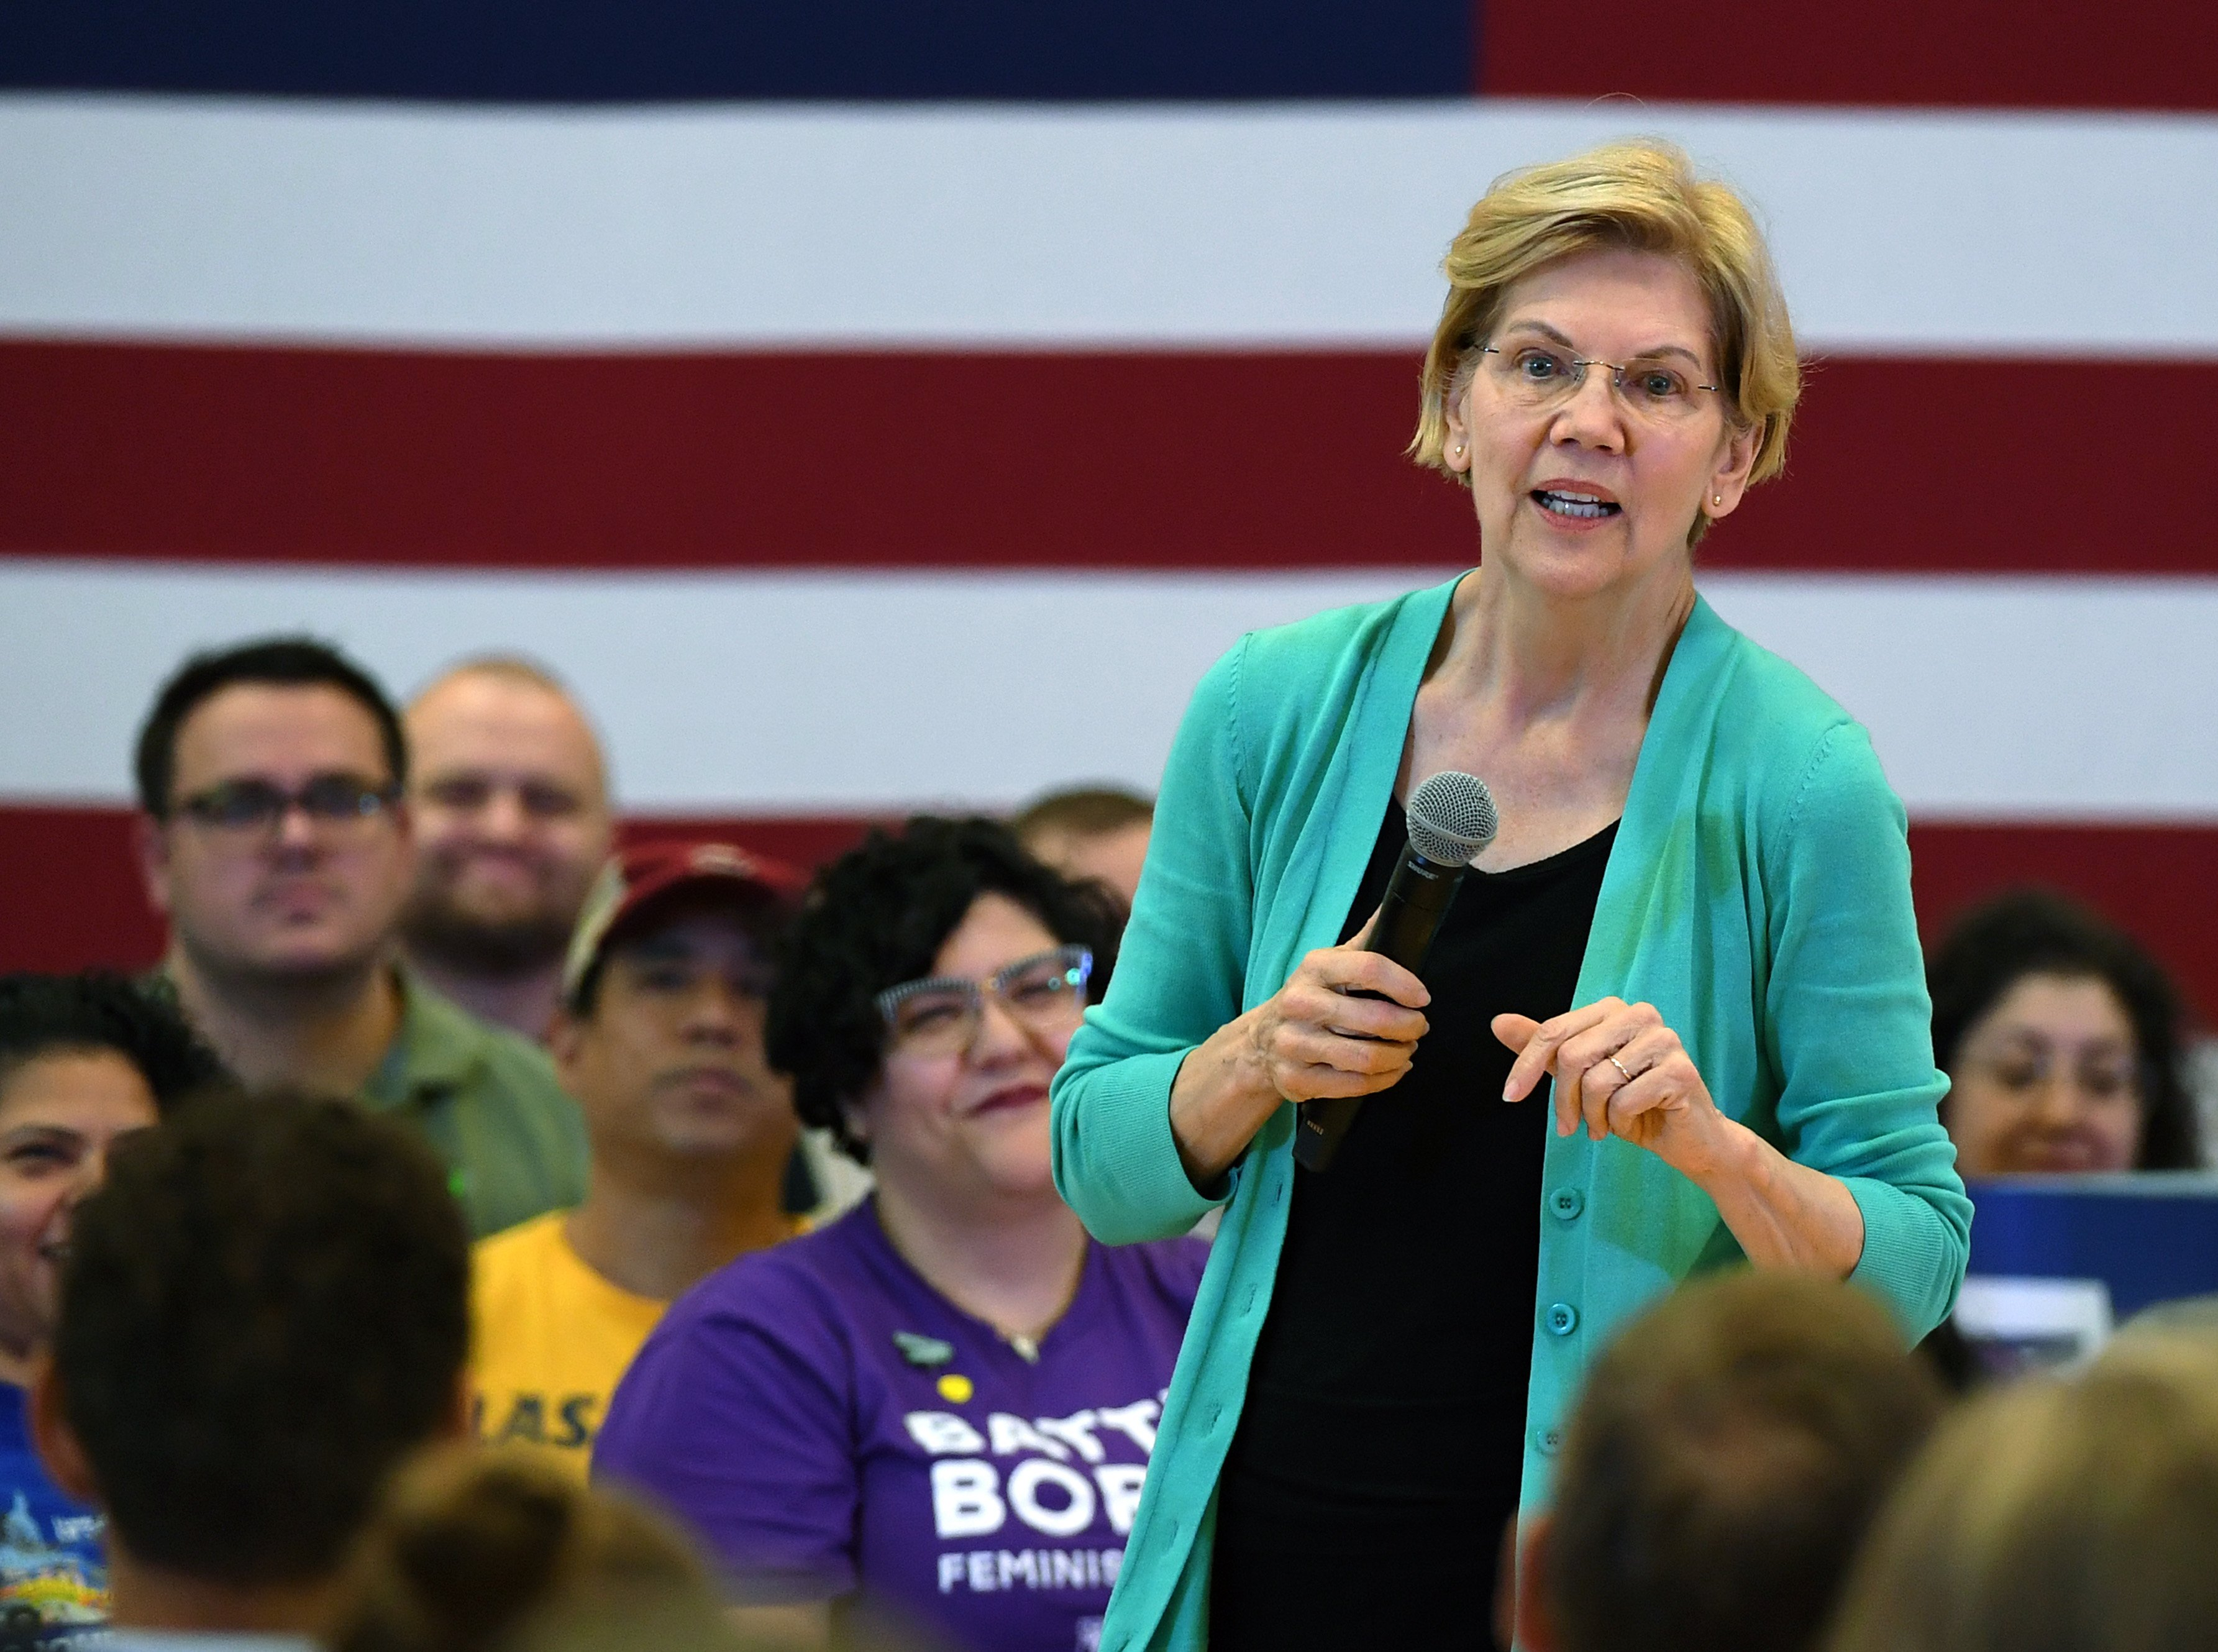 LAS VEGAS, NEVADA - JULY 02: Democratic presidential candidate U.S. Sen. Elizabeth Warren (D-MA) speaks during a community conversation at the East Las Vegas Community Center on July 2, 2019 in Las Vegas, Nevada. Polls taken after last week's first Democratic presidential debates show Warren gaining ground with voters. (Photo by Ethan Miller/Getty Images)